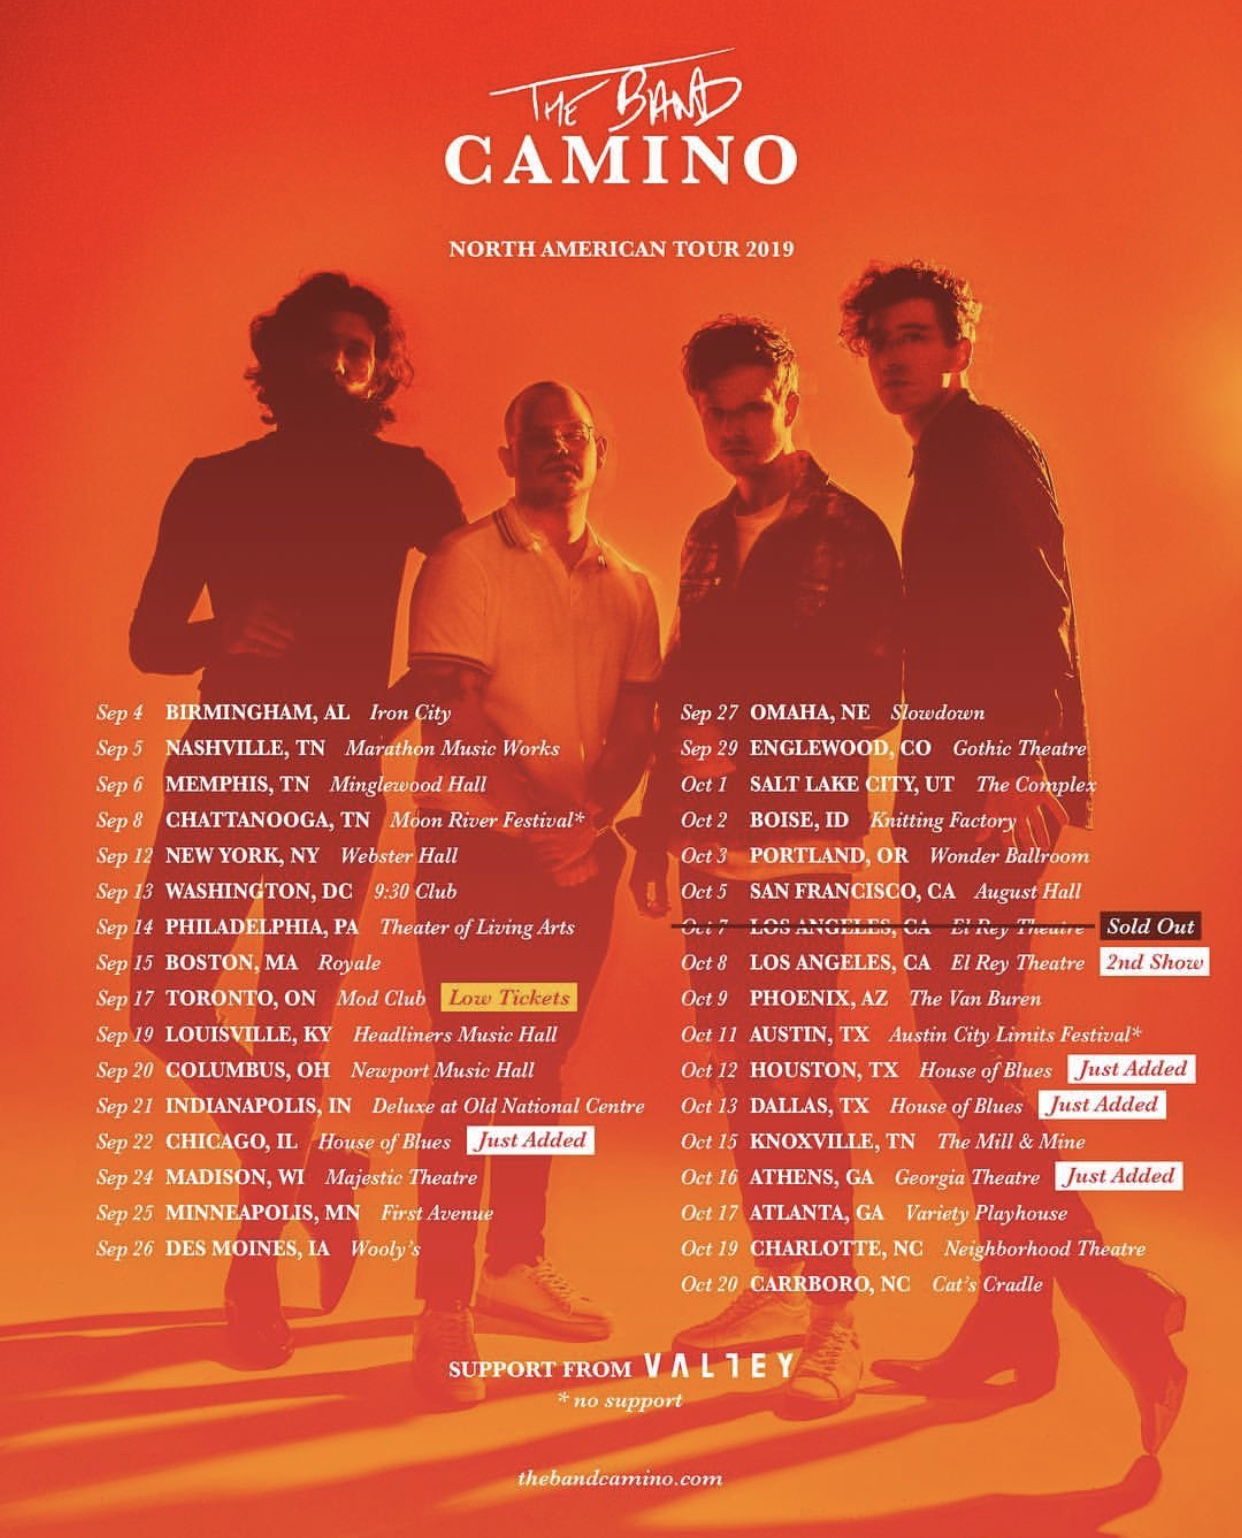 Check out Valley on tour with the Band Camino this fall!